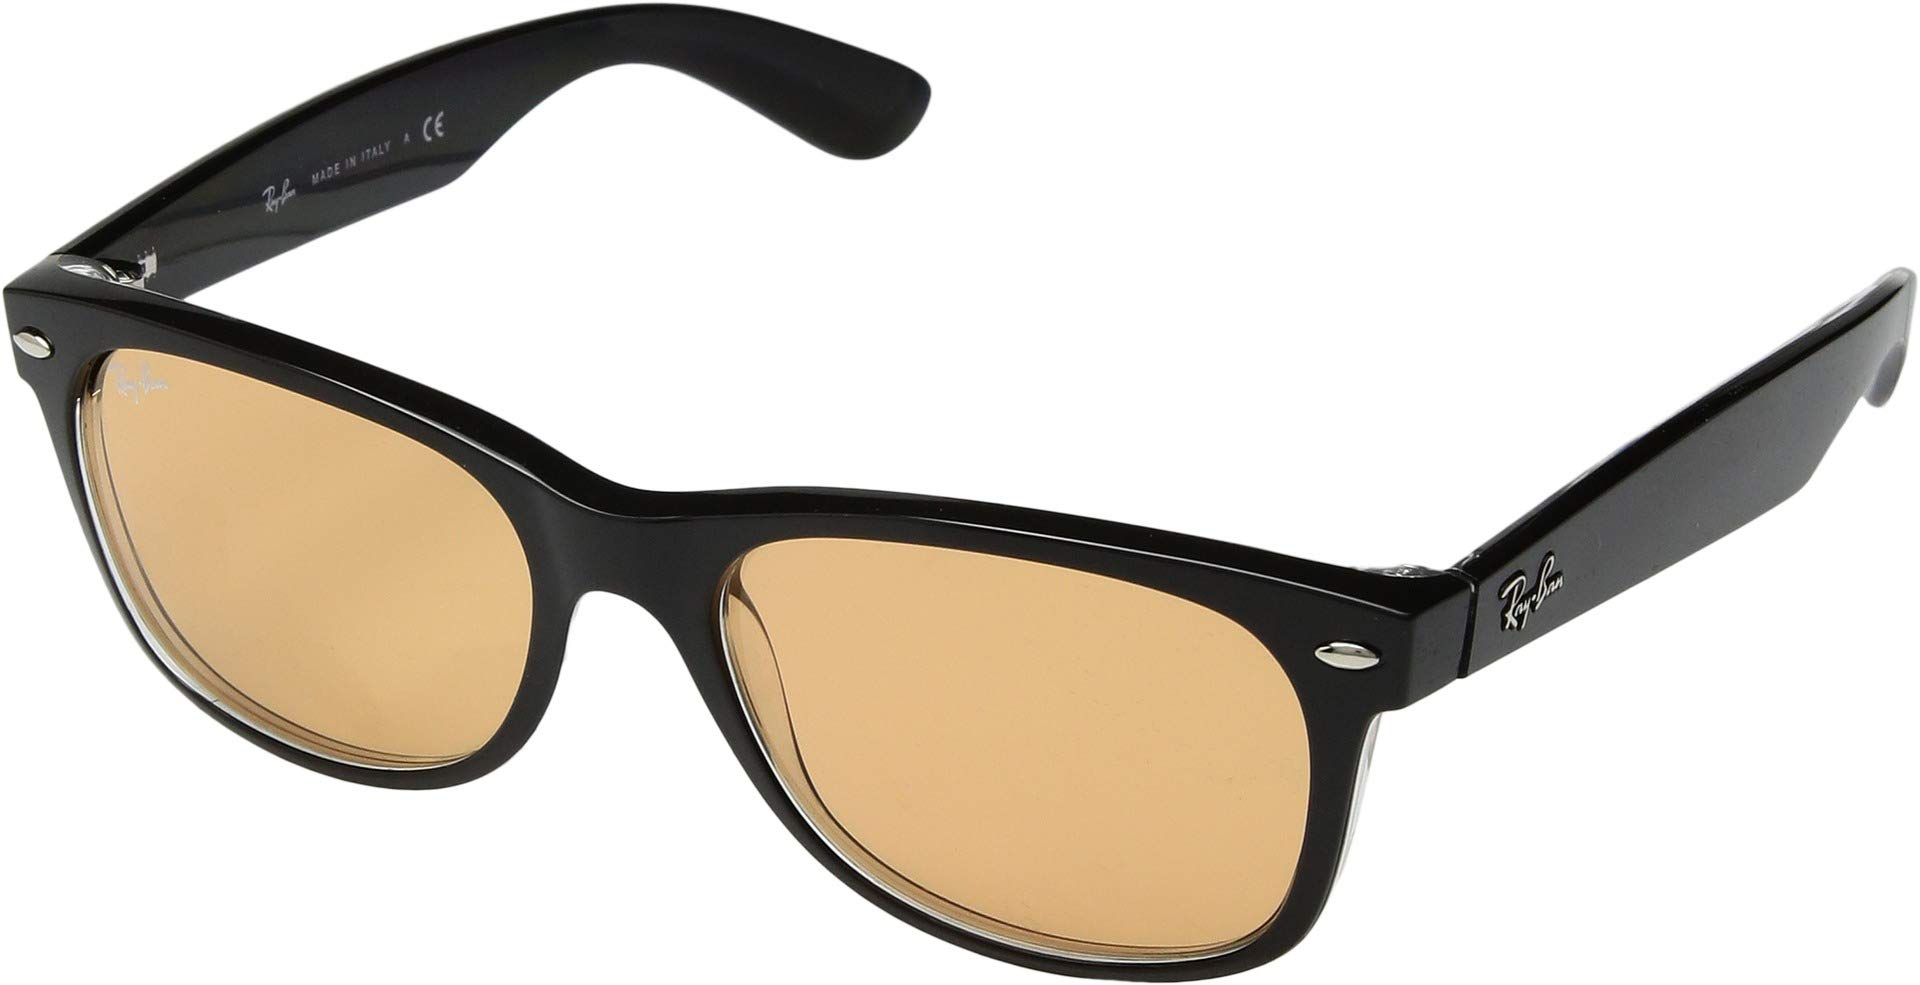 RAY-BAN RB2132 New Wayfarer Sunglasses, Black & Transparent/Yellow Mirror Gold, 55 mm by RAY-BAN